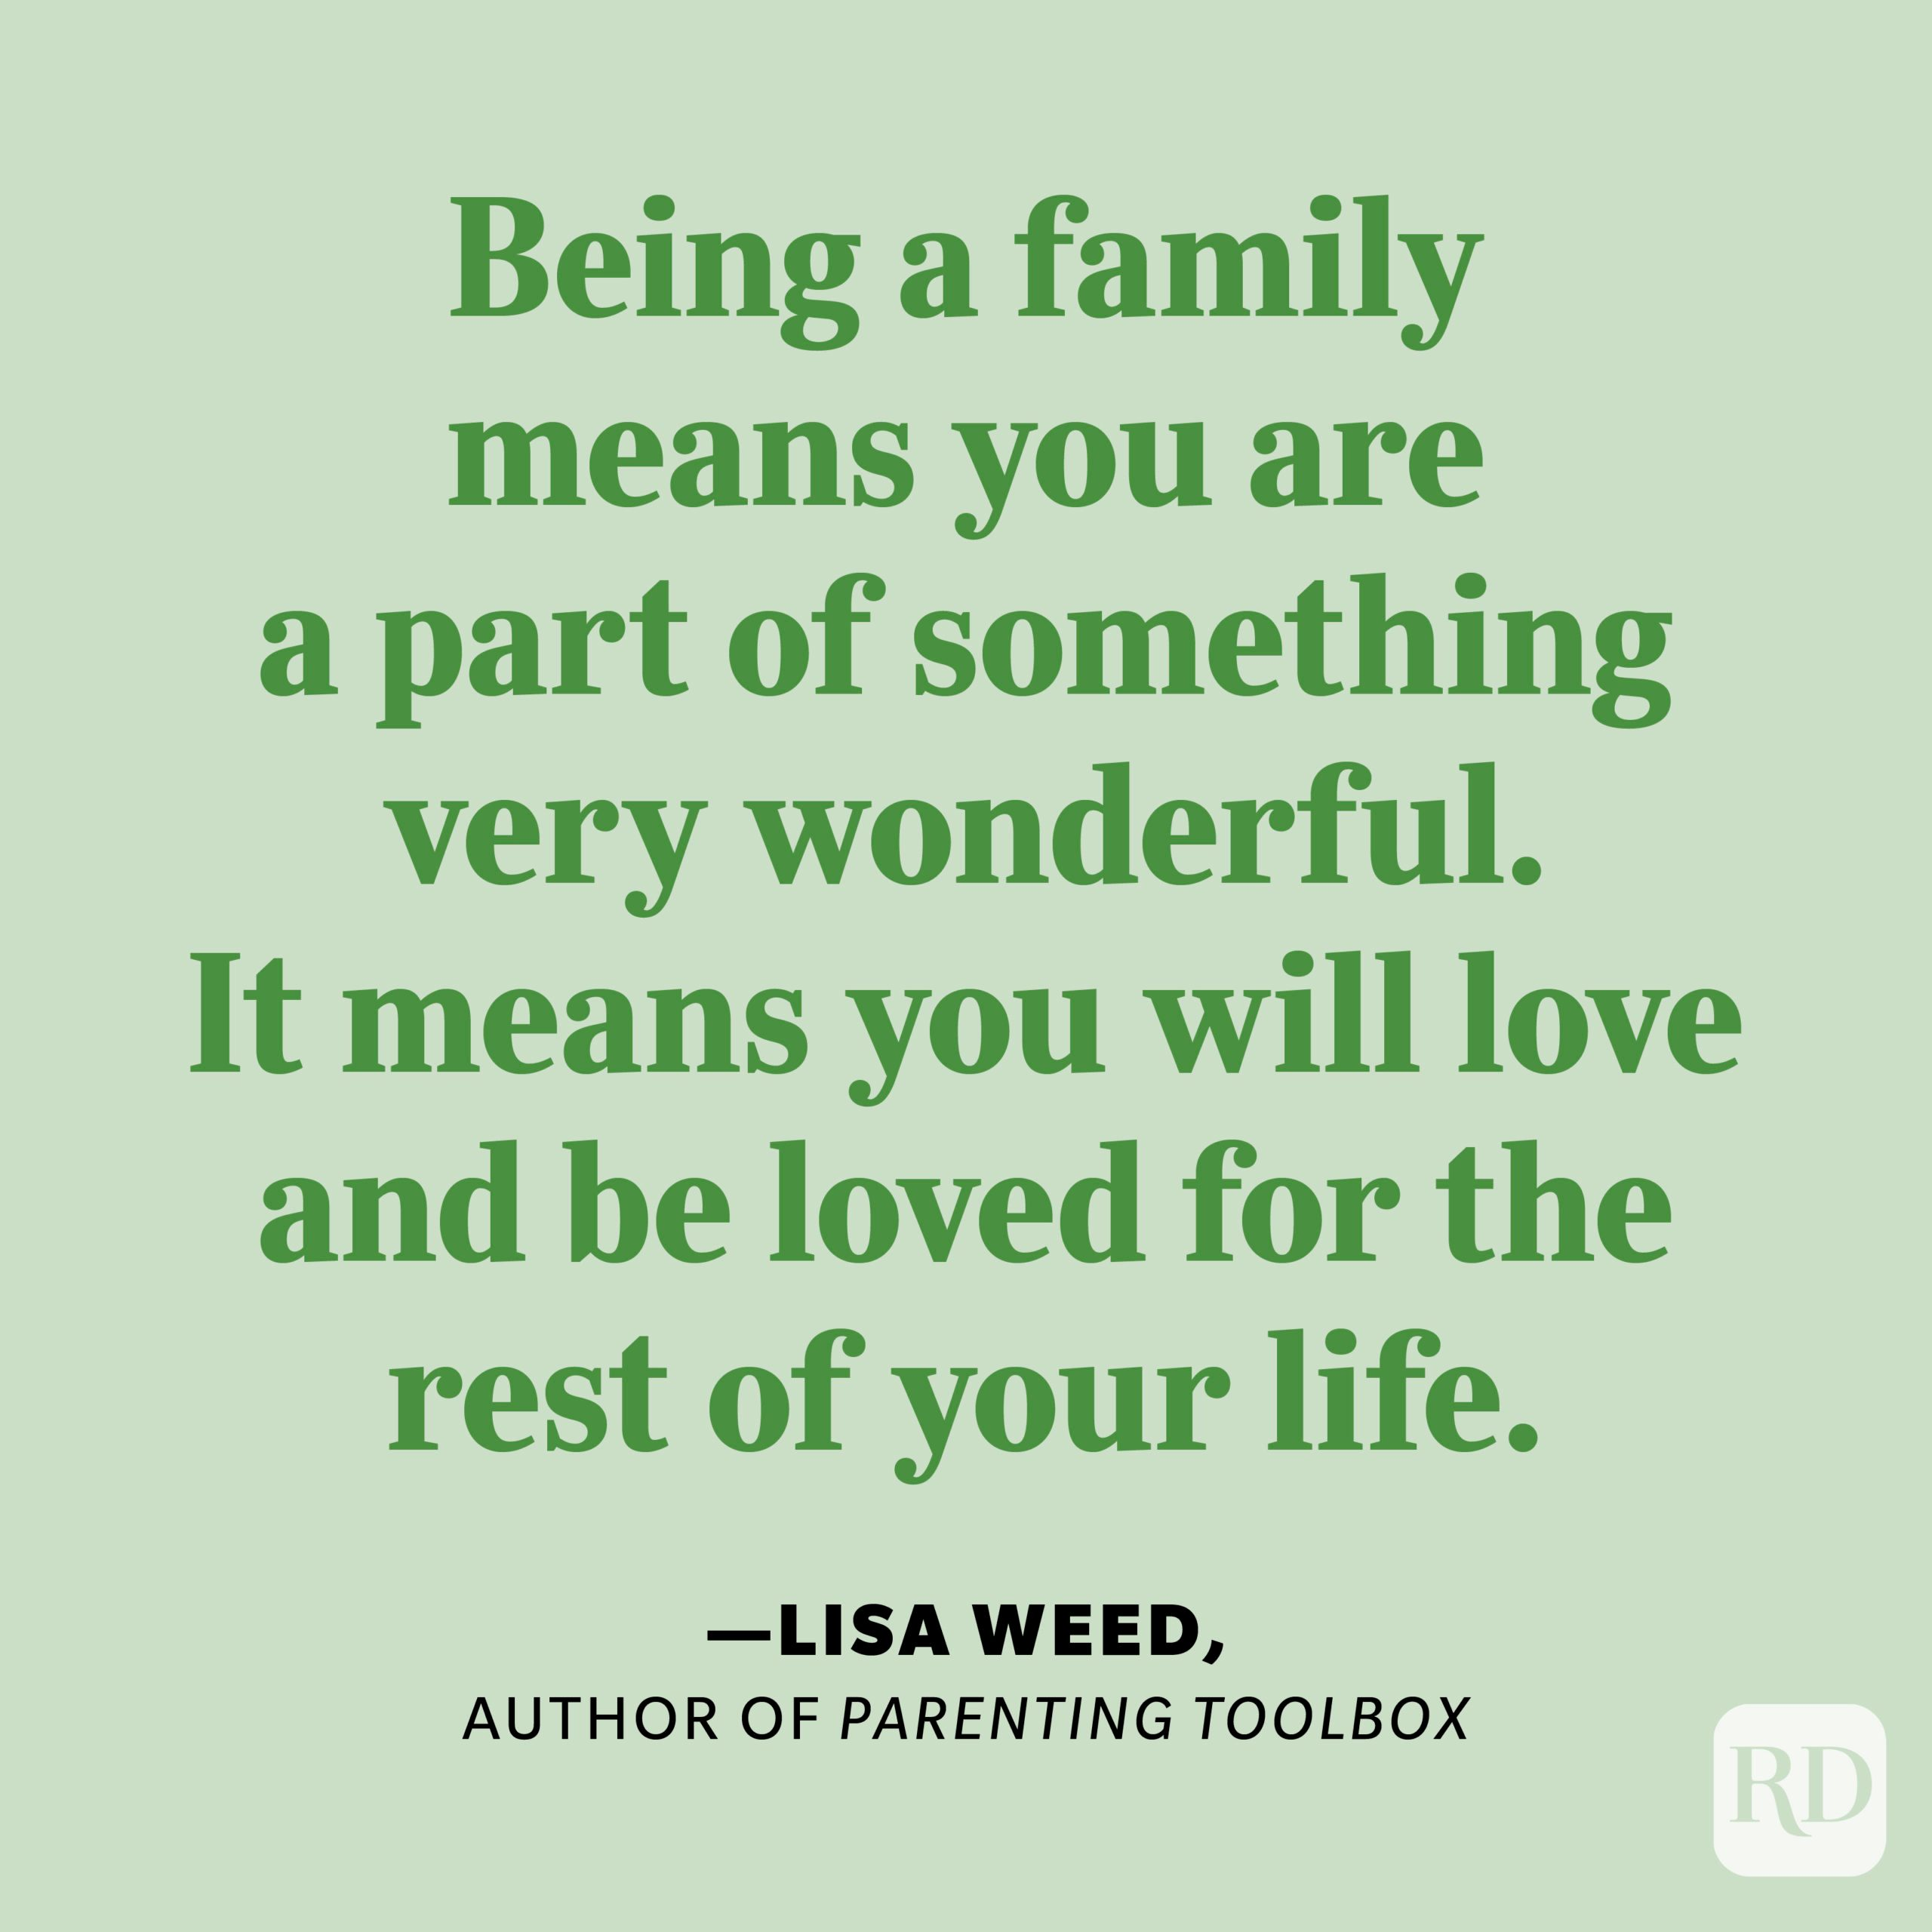 """""""Being a family means you are a part of something very wonderful. It means you will love and be loved for the rest of your life."""" —Lisa Weed, author of Parenting Toolbox."""